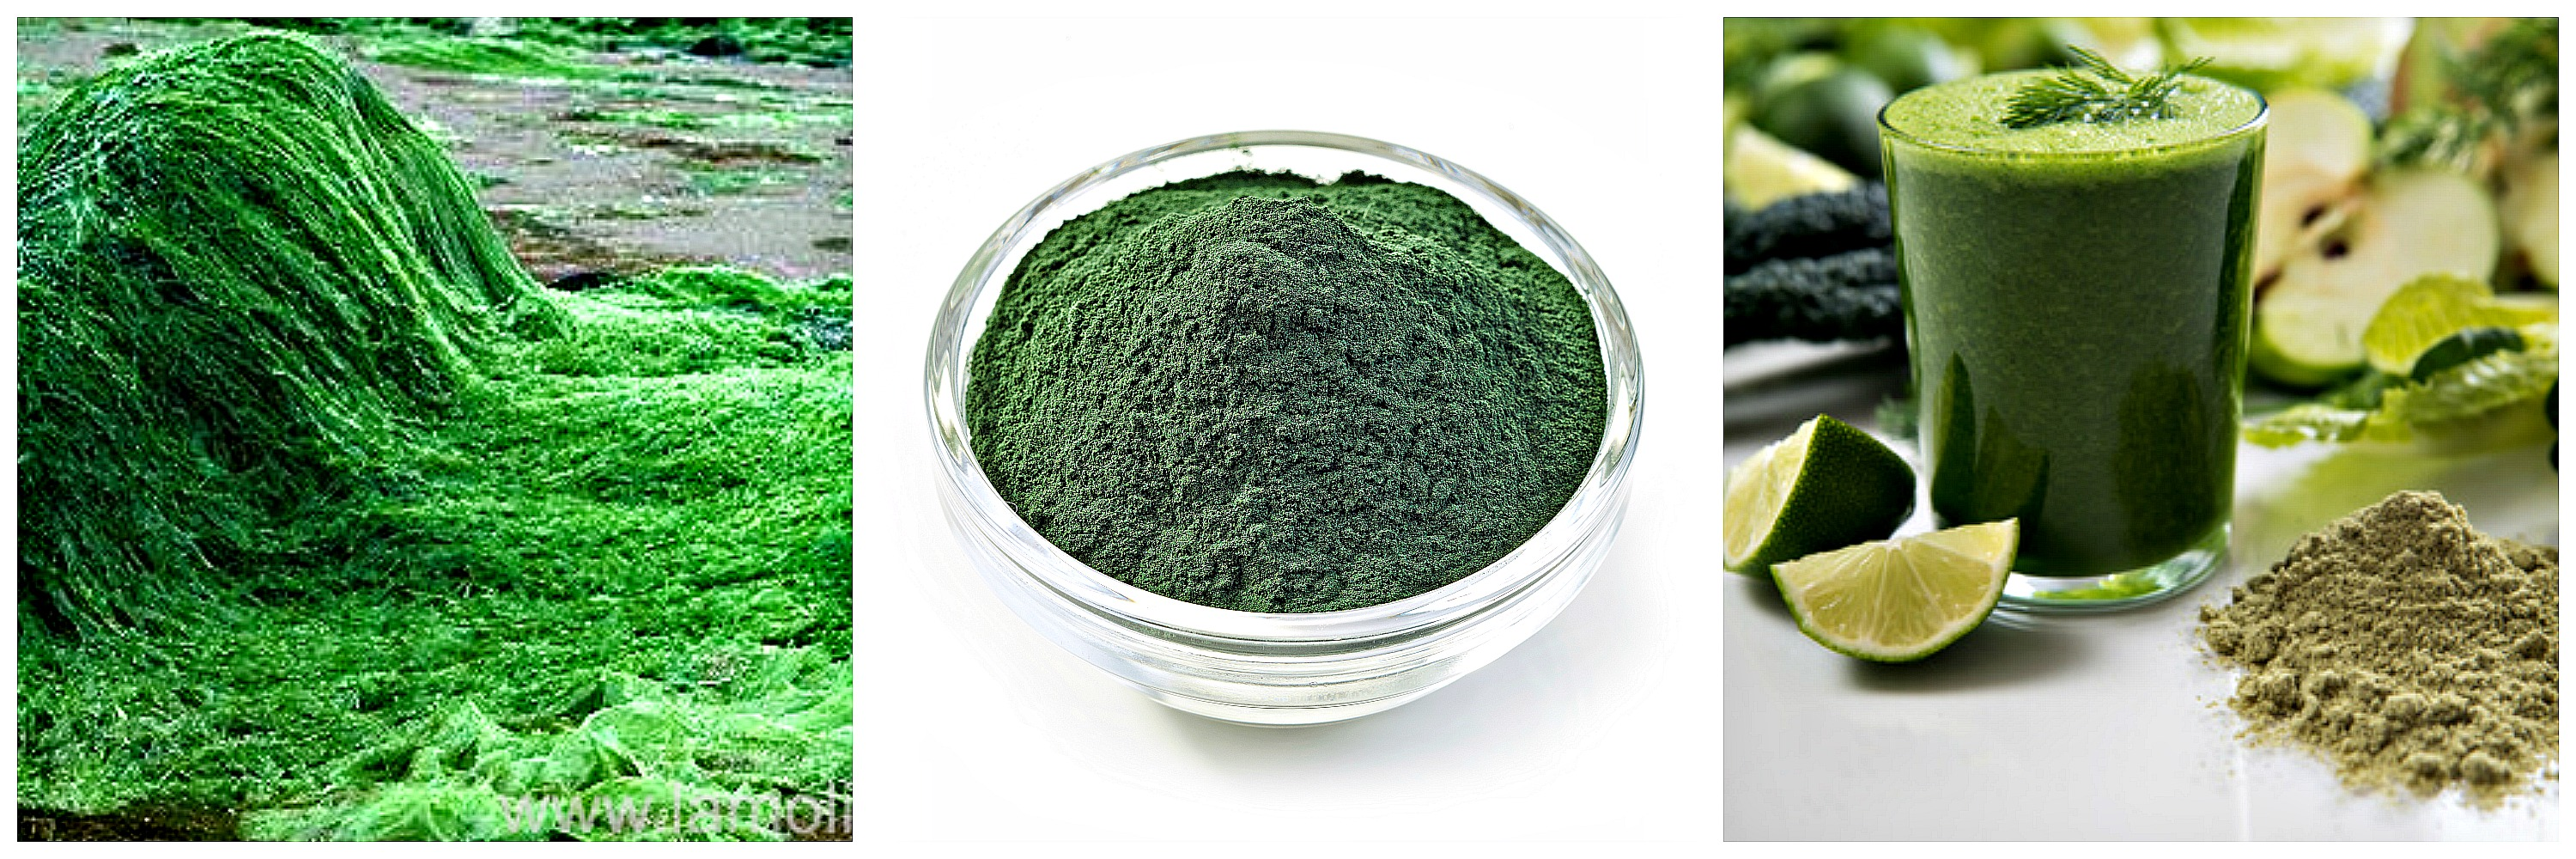 Spirulina growing, powder and smoothie